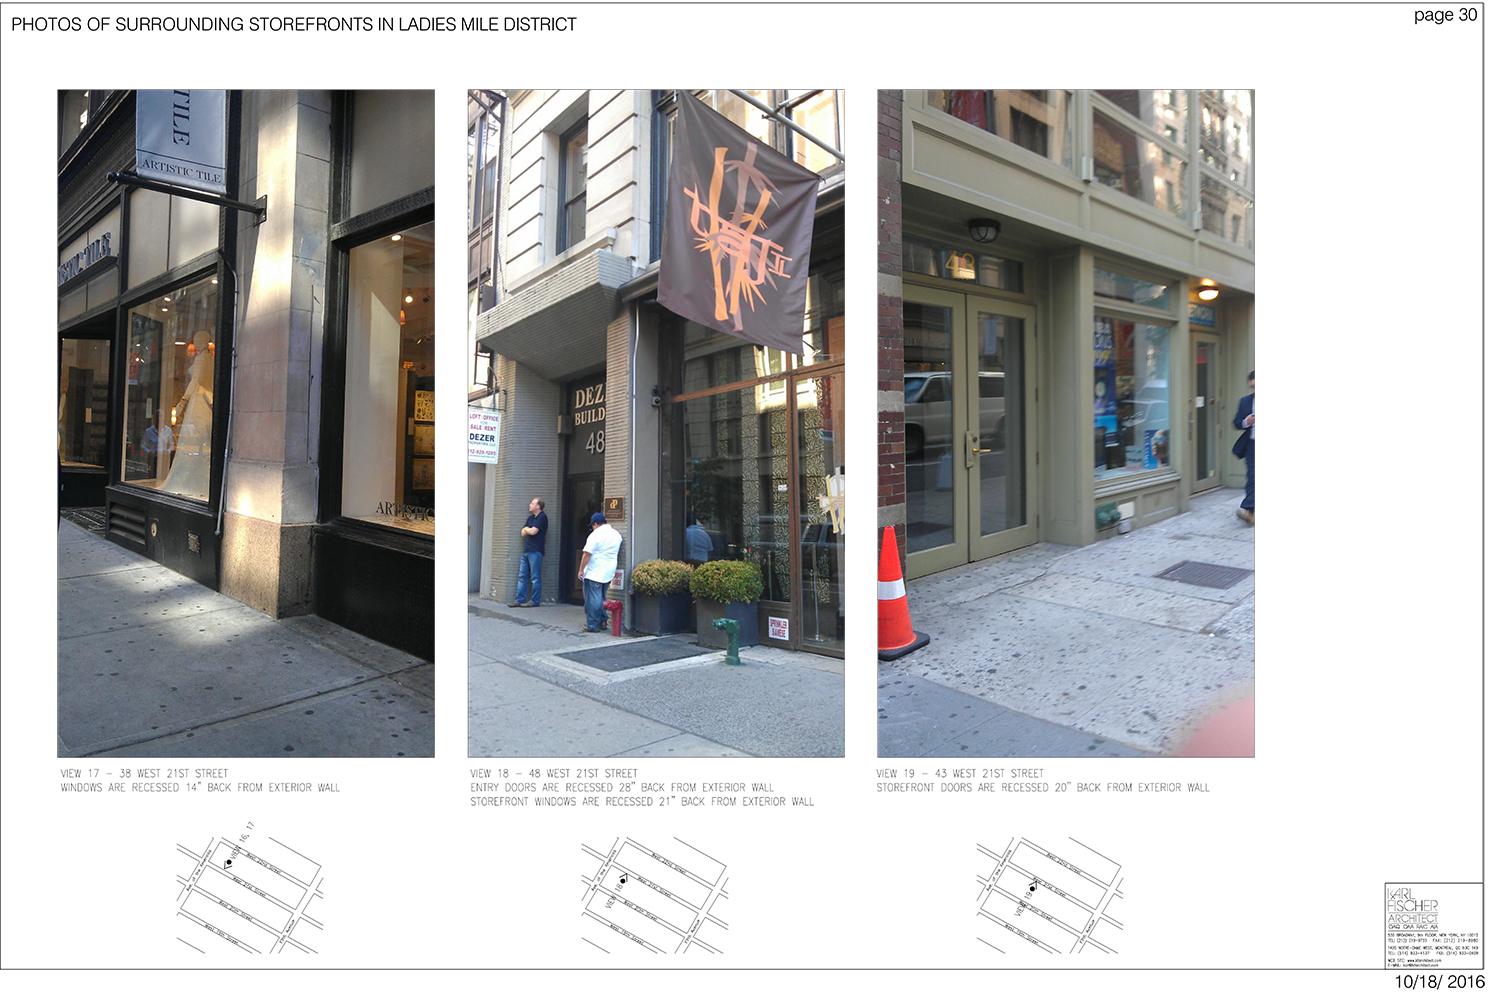 34West21stStreet_20161101_31